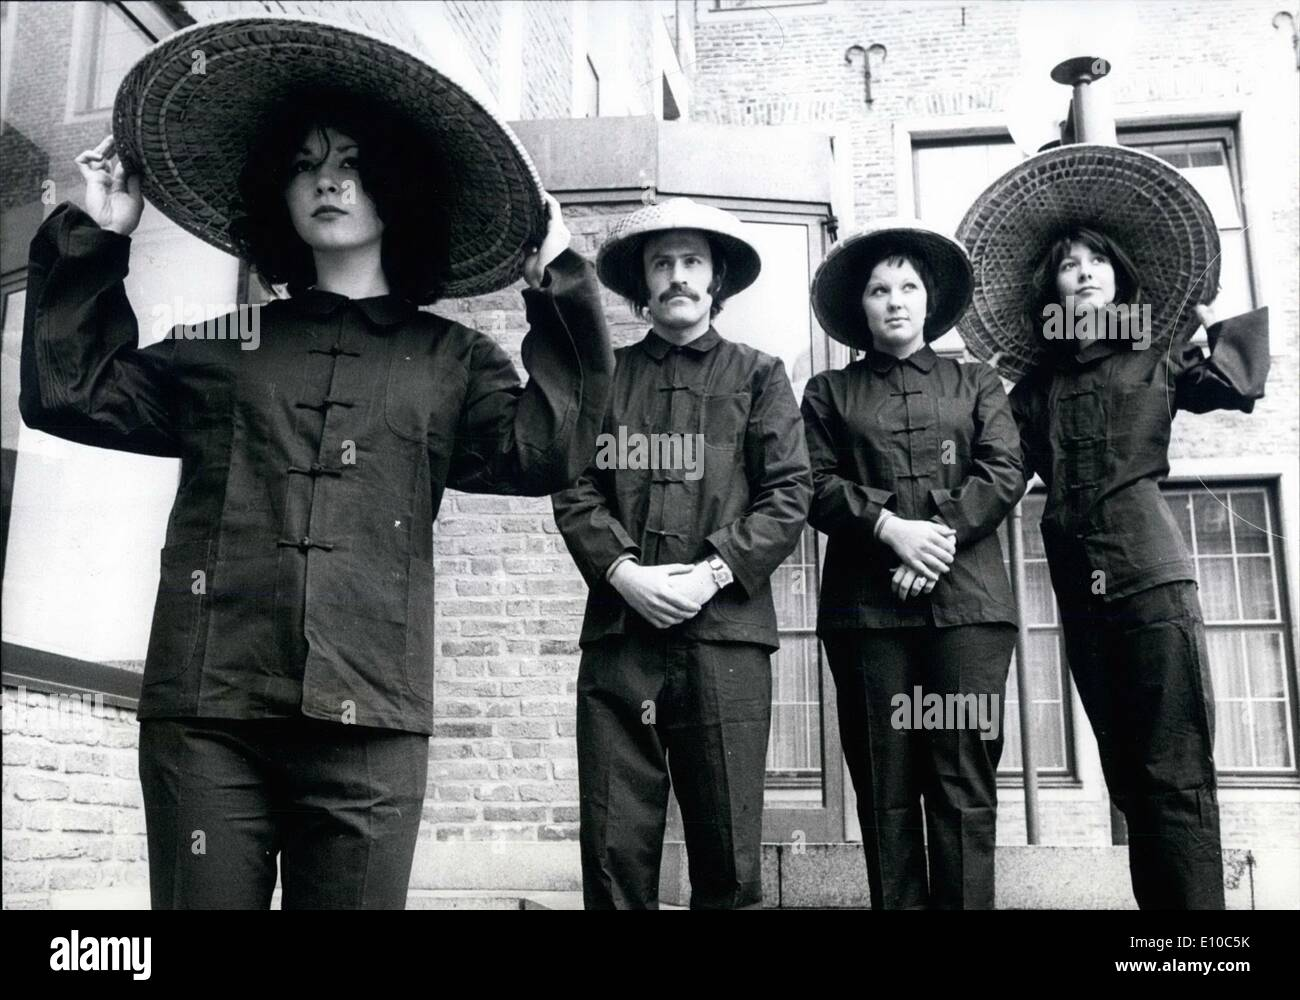 Apr. 04, 1972 - Blue Ants-Dresses For Only 58 DM: After the Mao-look, now the new Peking-look. From Peking the blue working-suits are coming in fashion. Models are wearing the first samples in Dusseldorf (West-Germany) - Stock Image